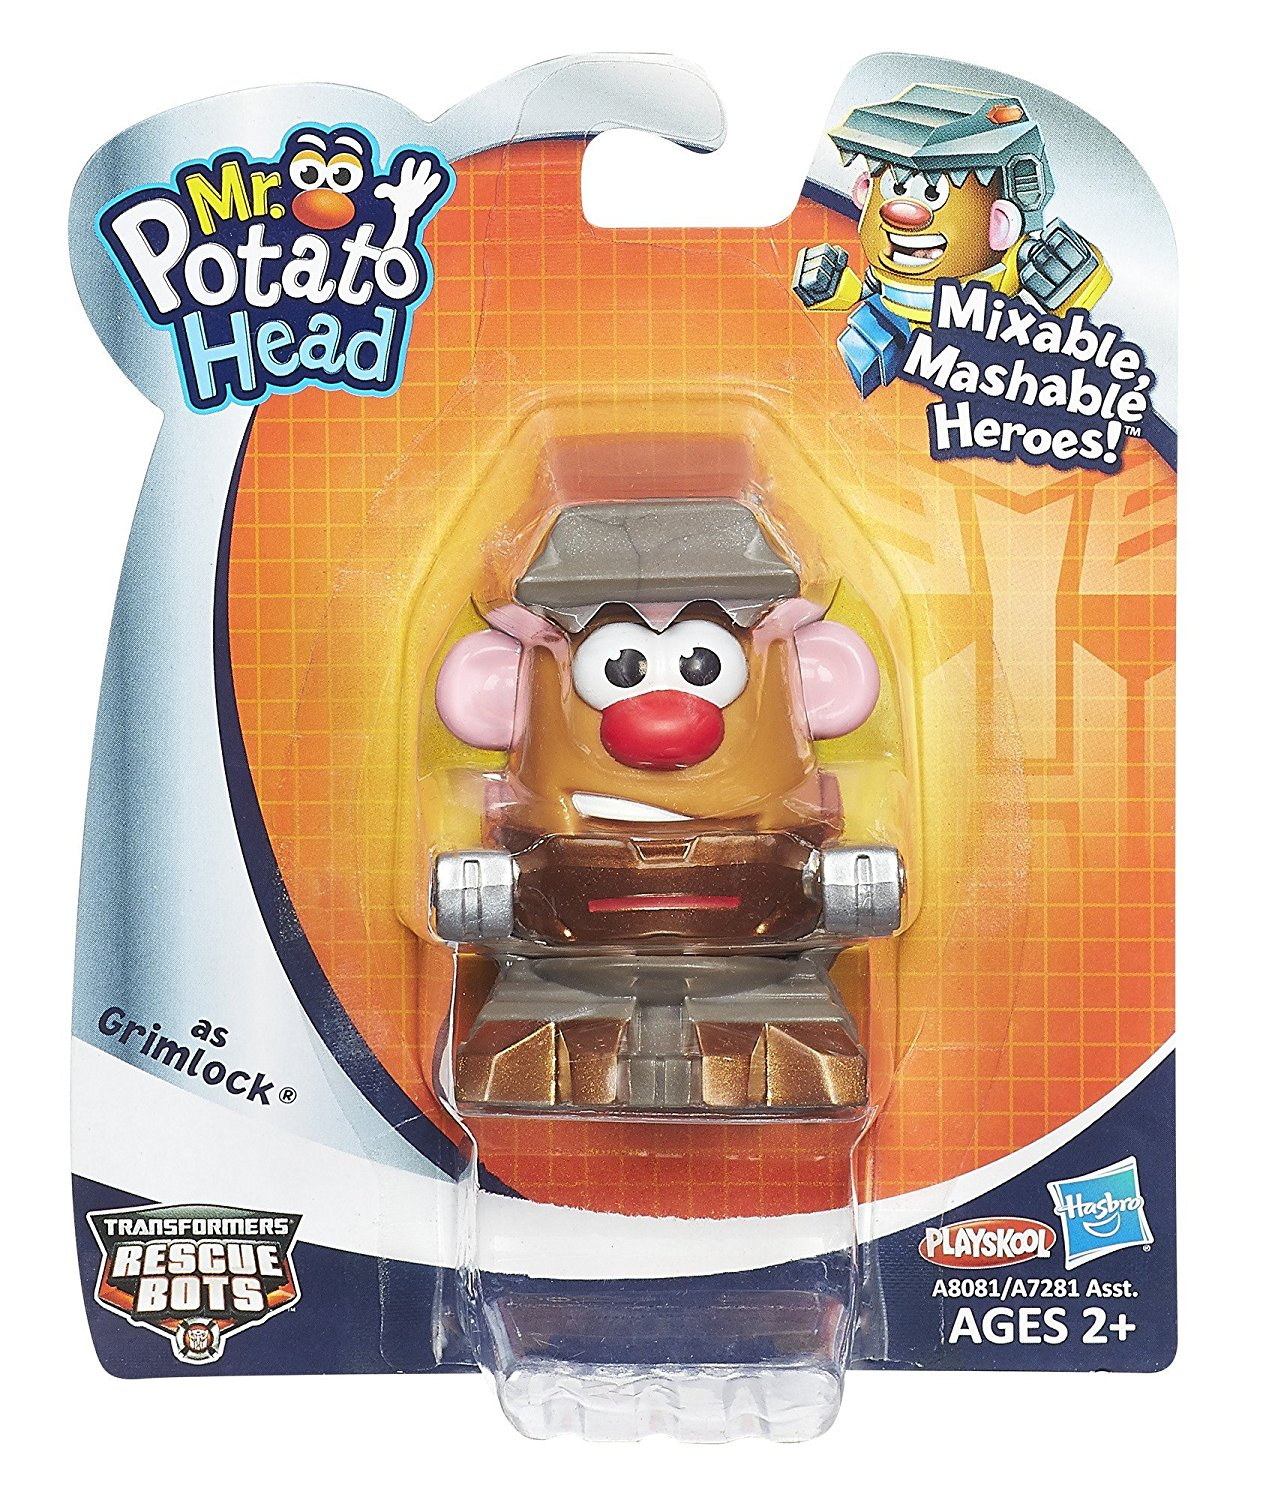 Mr. Potato Head Transformers Mixable Mashable Heroes As Grimlock..., By Playskool Ship... by